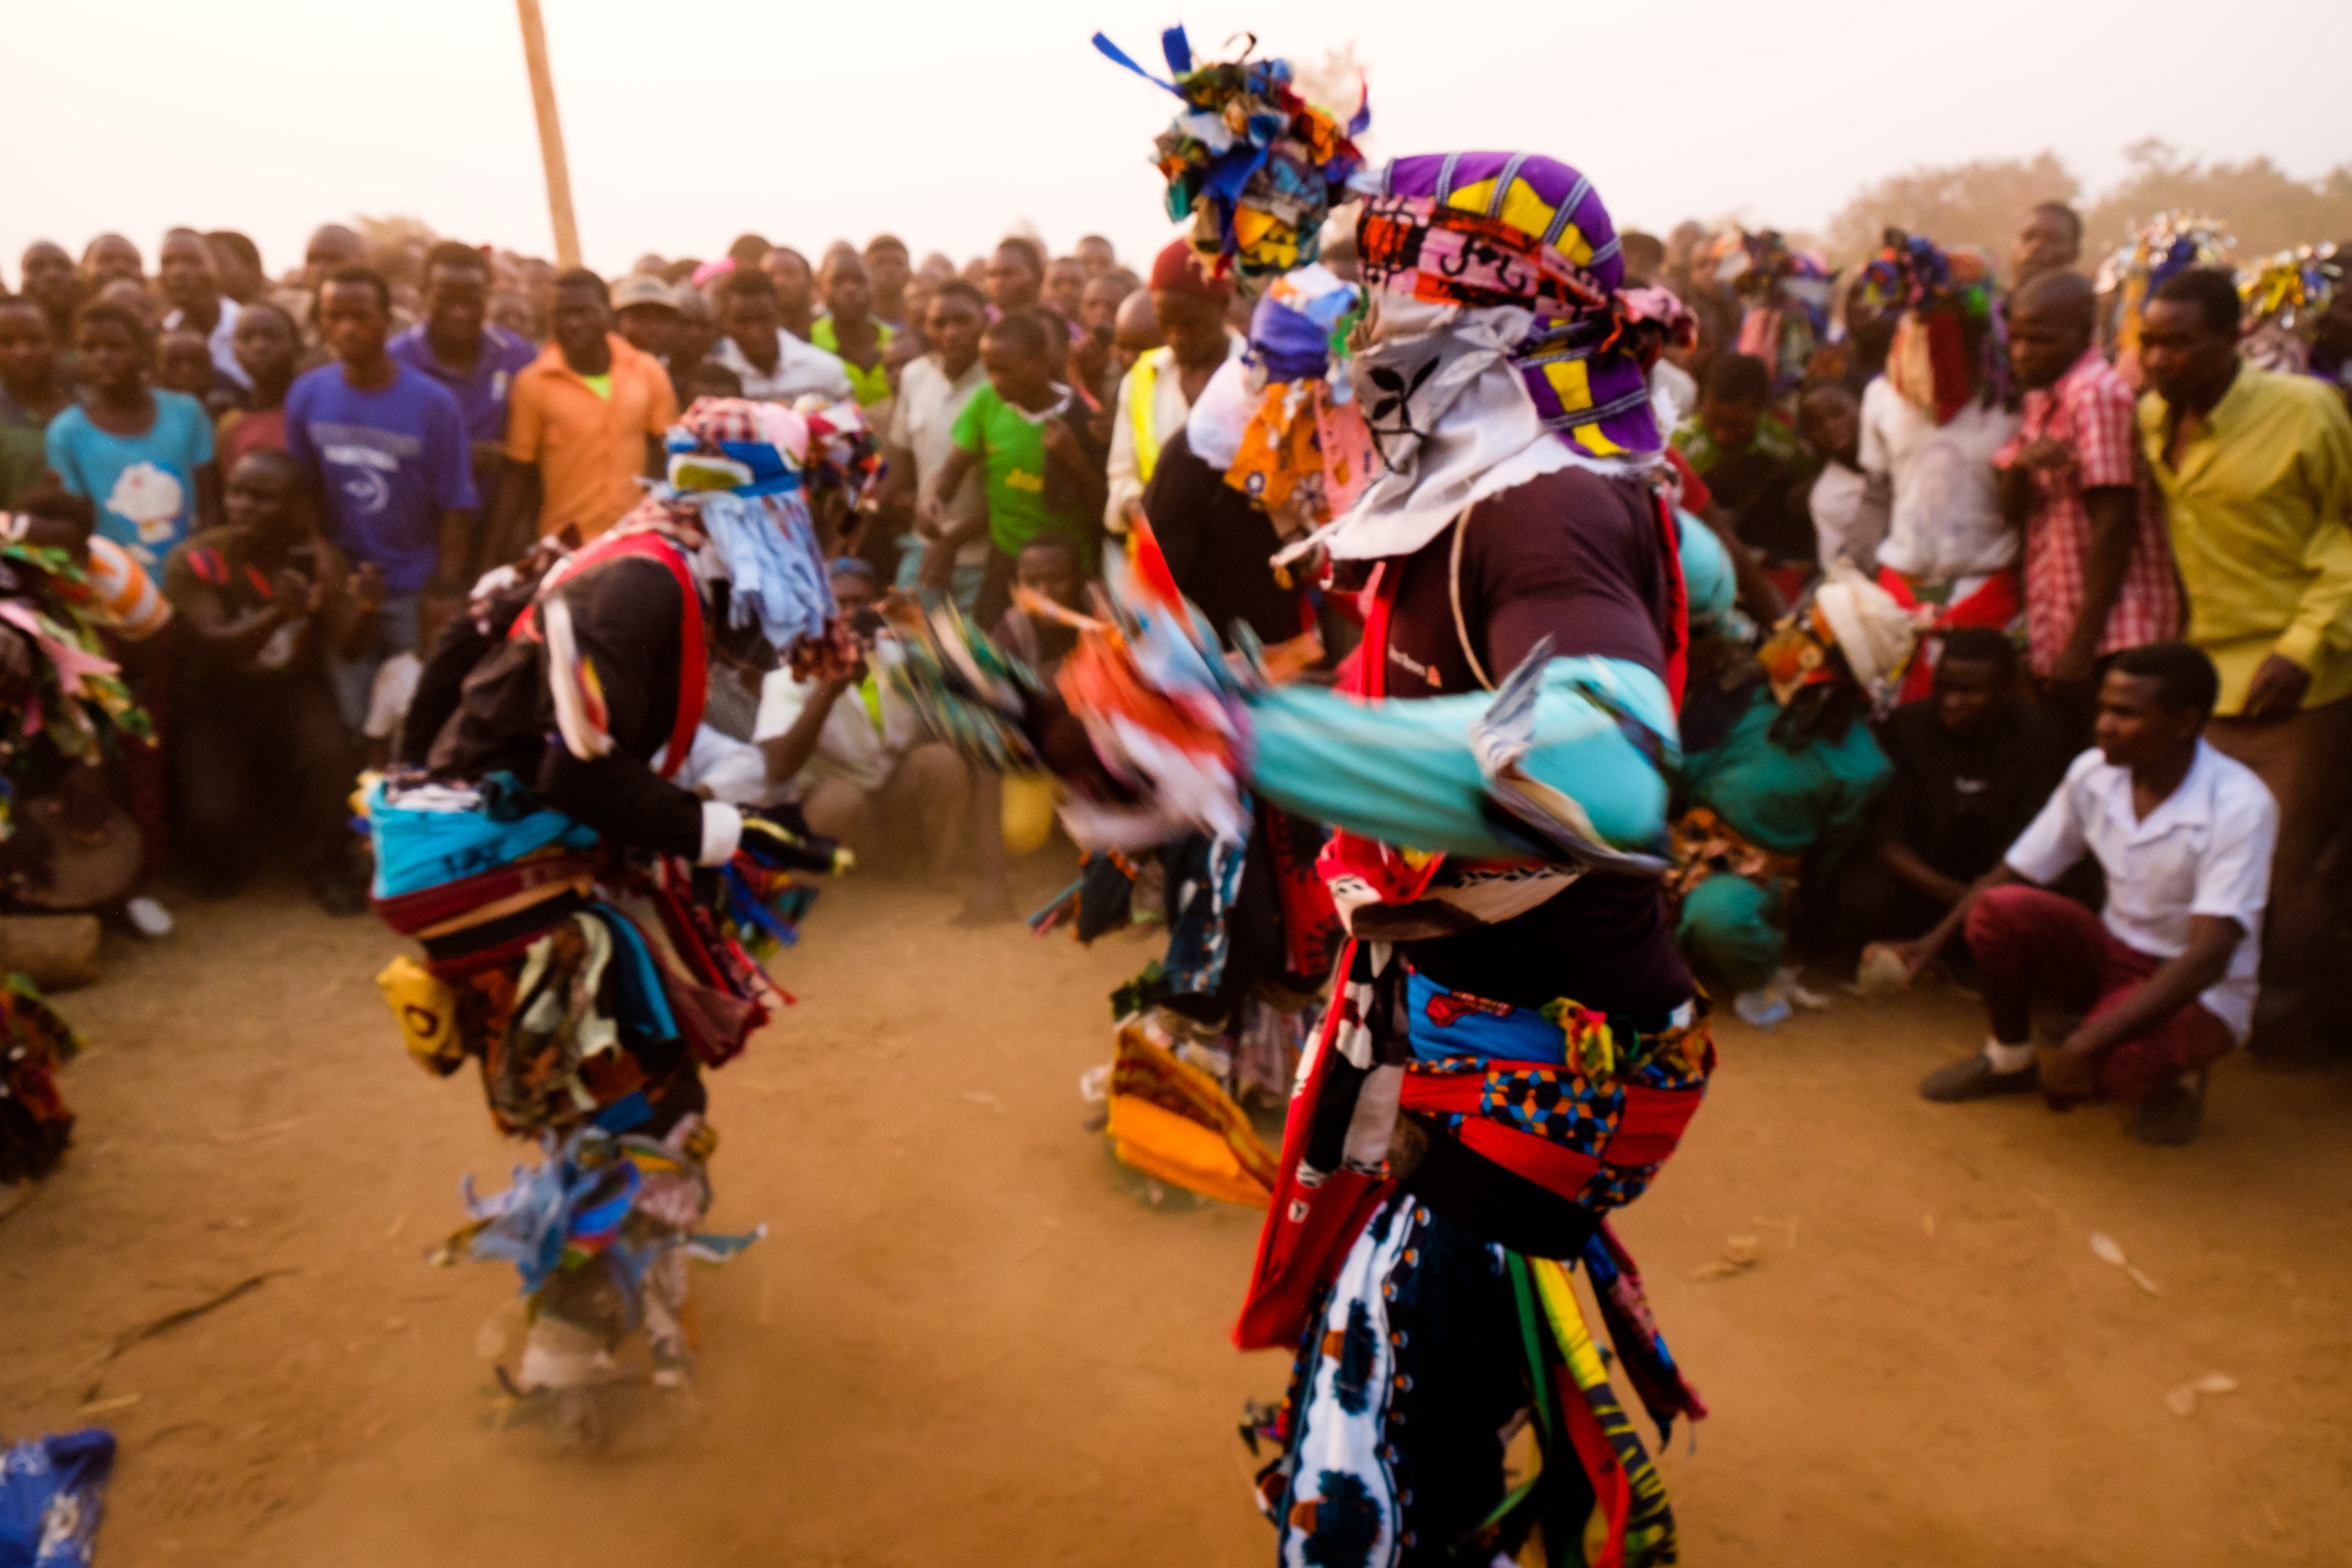 The crowed gathered around to see traditional dances performed by the masked performers.